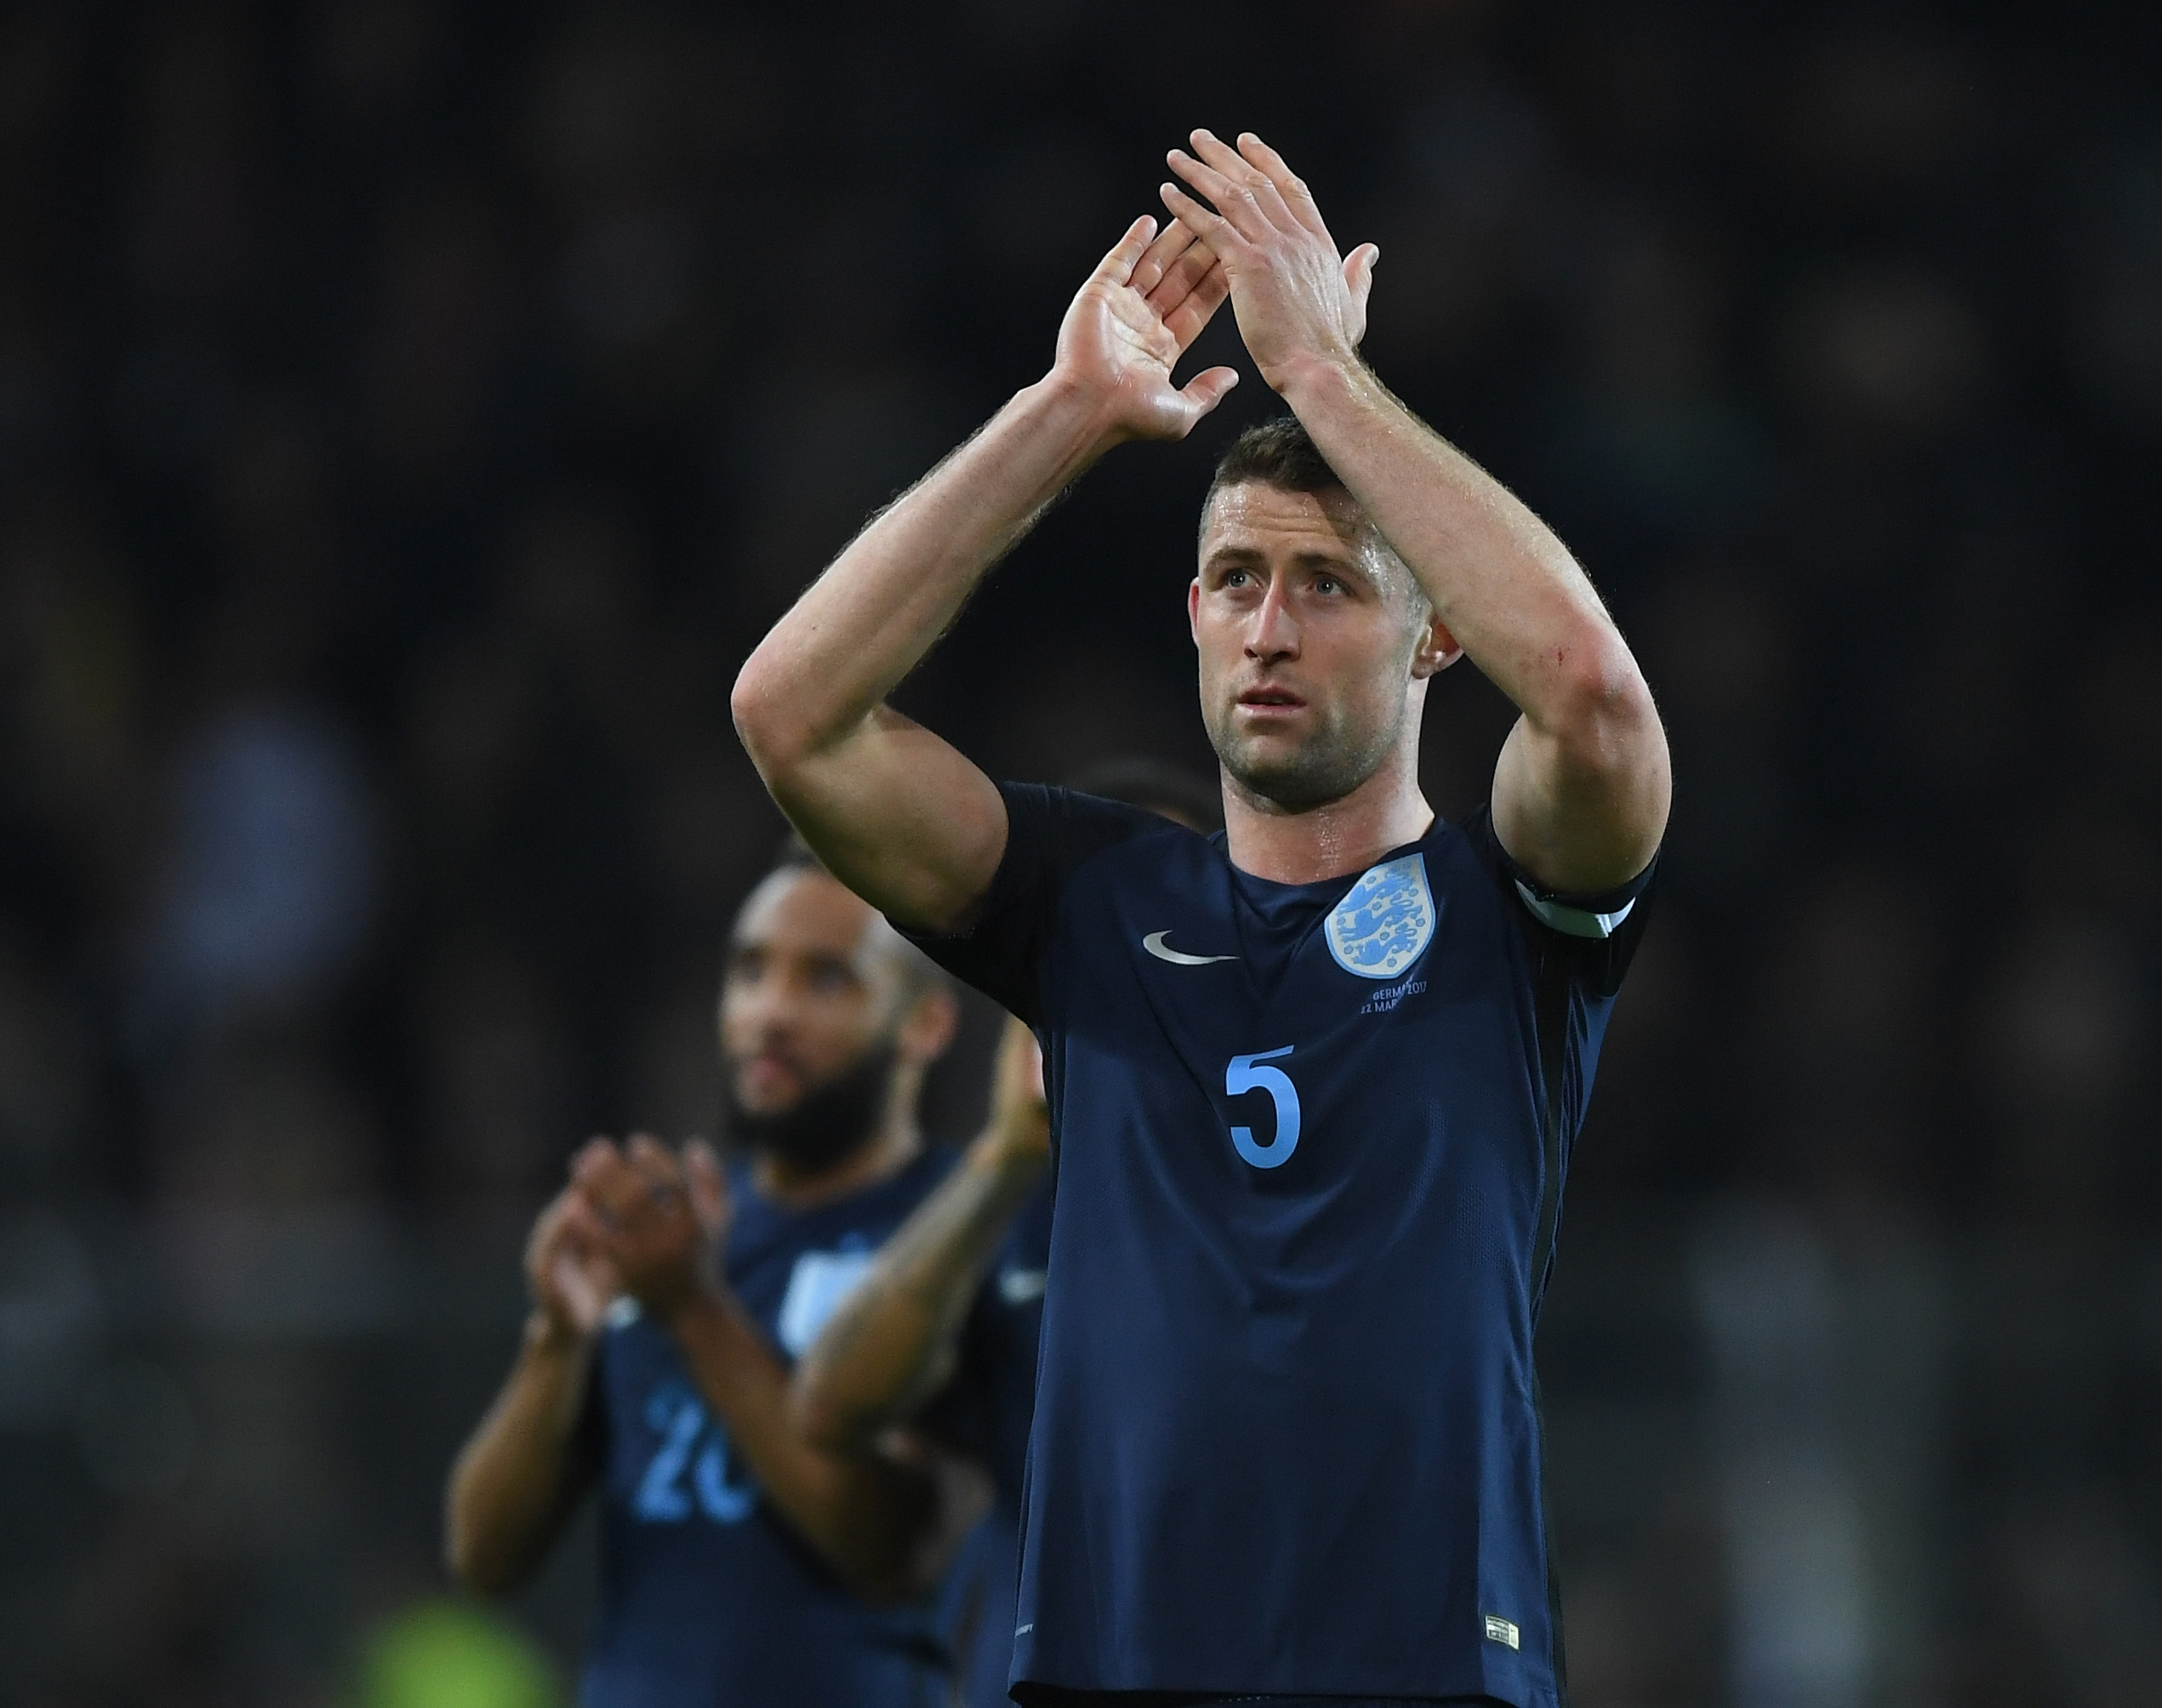 DORTMUND, GERMANY - MARCH 22: Gary Cahill of England applauds supporters after the full time whistle during the international friendly match between Germany and England at Signal Iduna Park on March 22, 2017 in Dortmund, Germany. (Photo by Shaun Botterill/Getty Images)